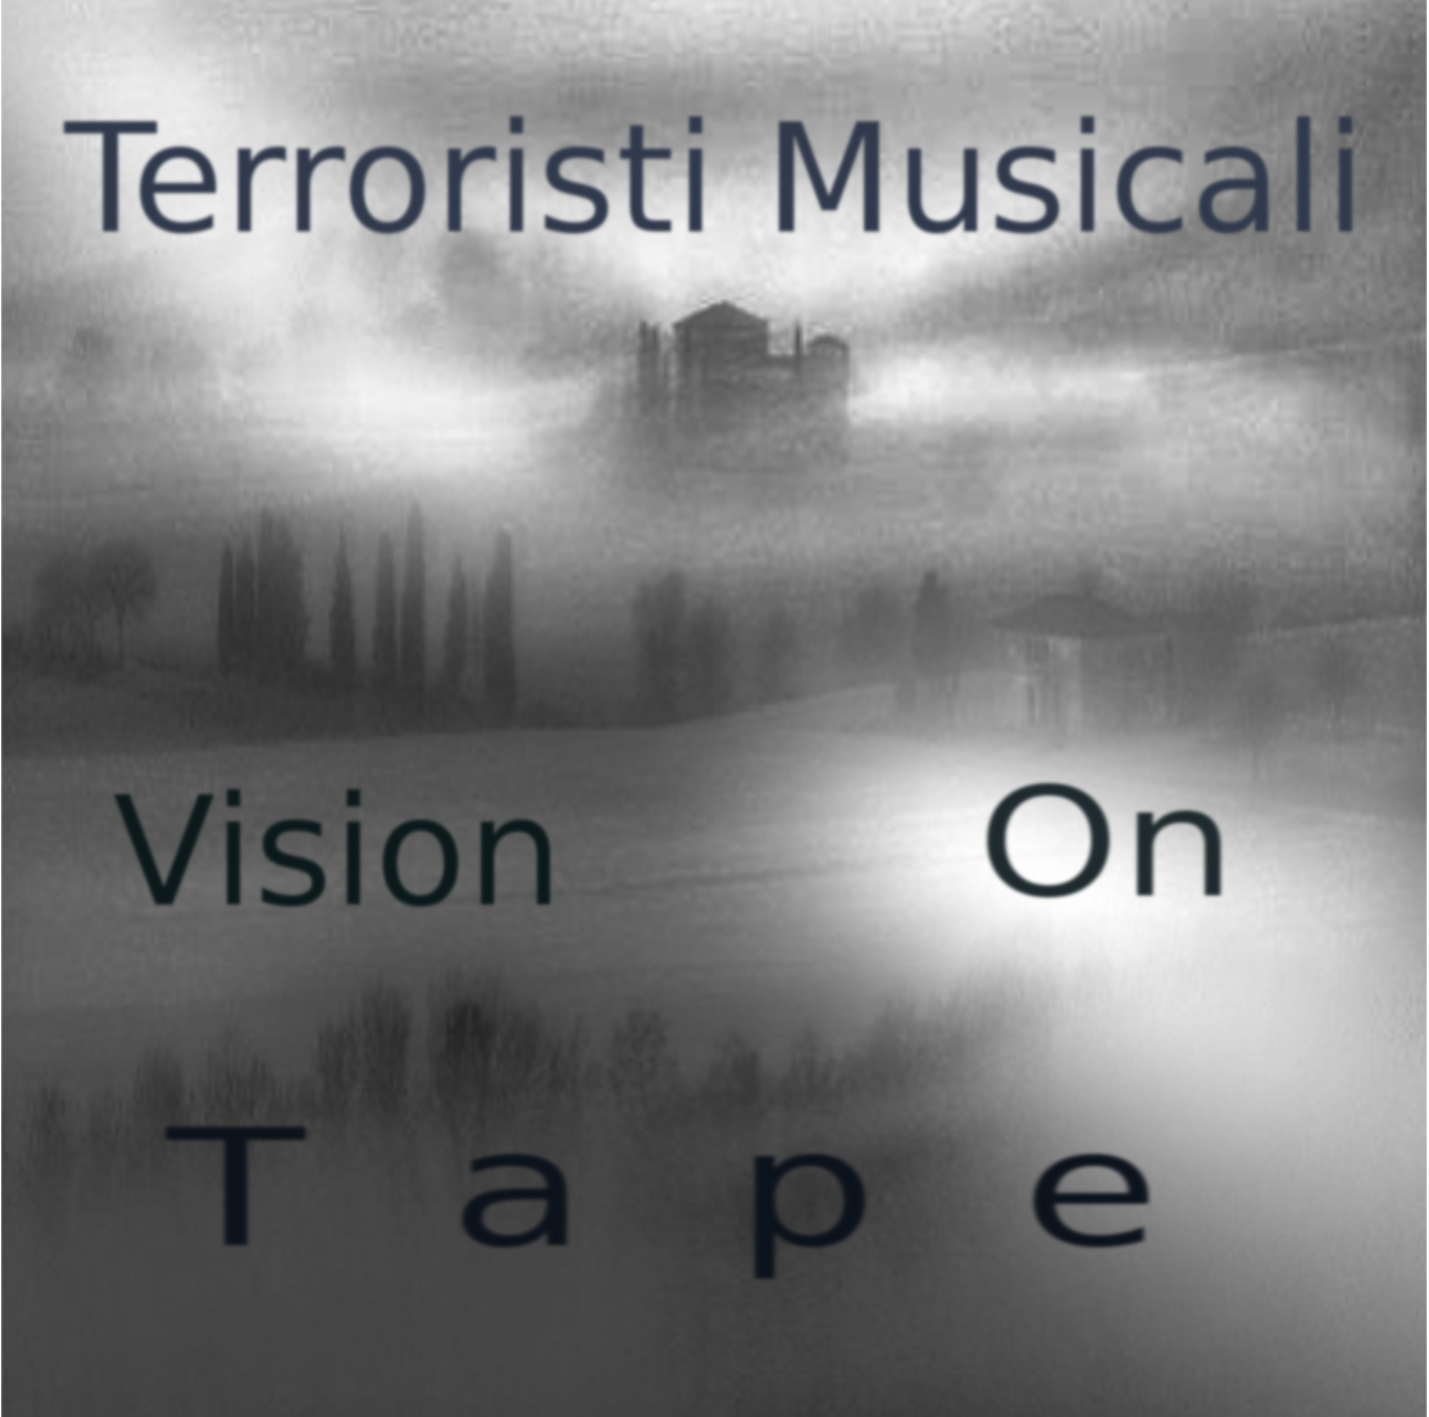 Vision on tape